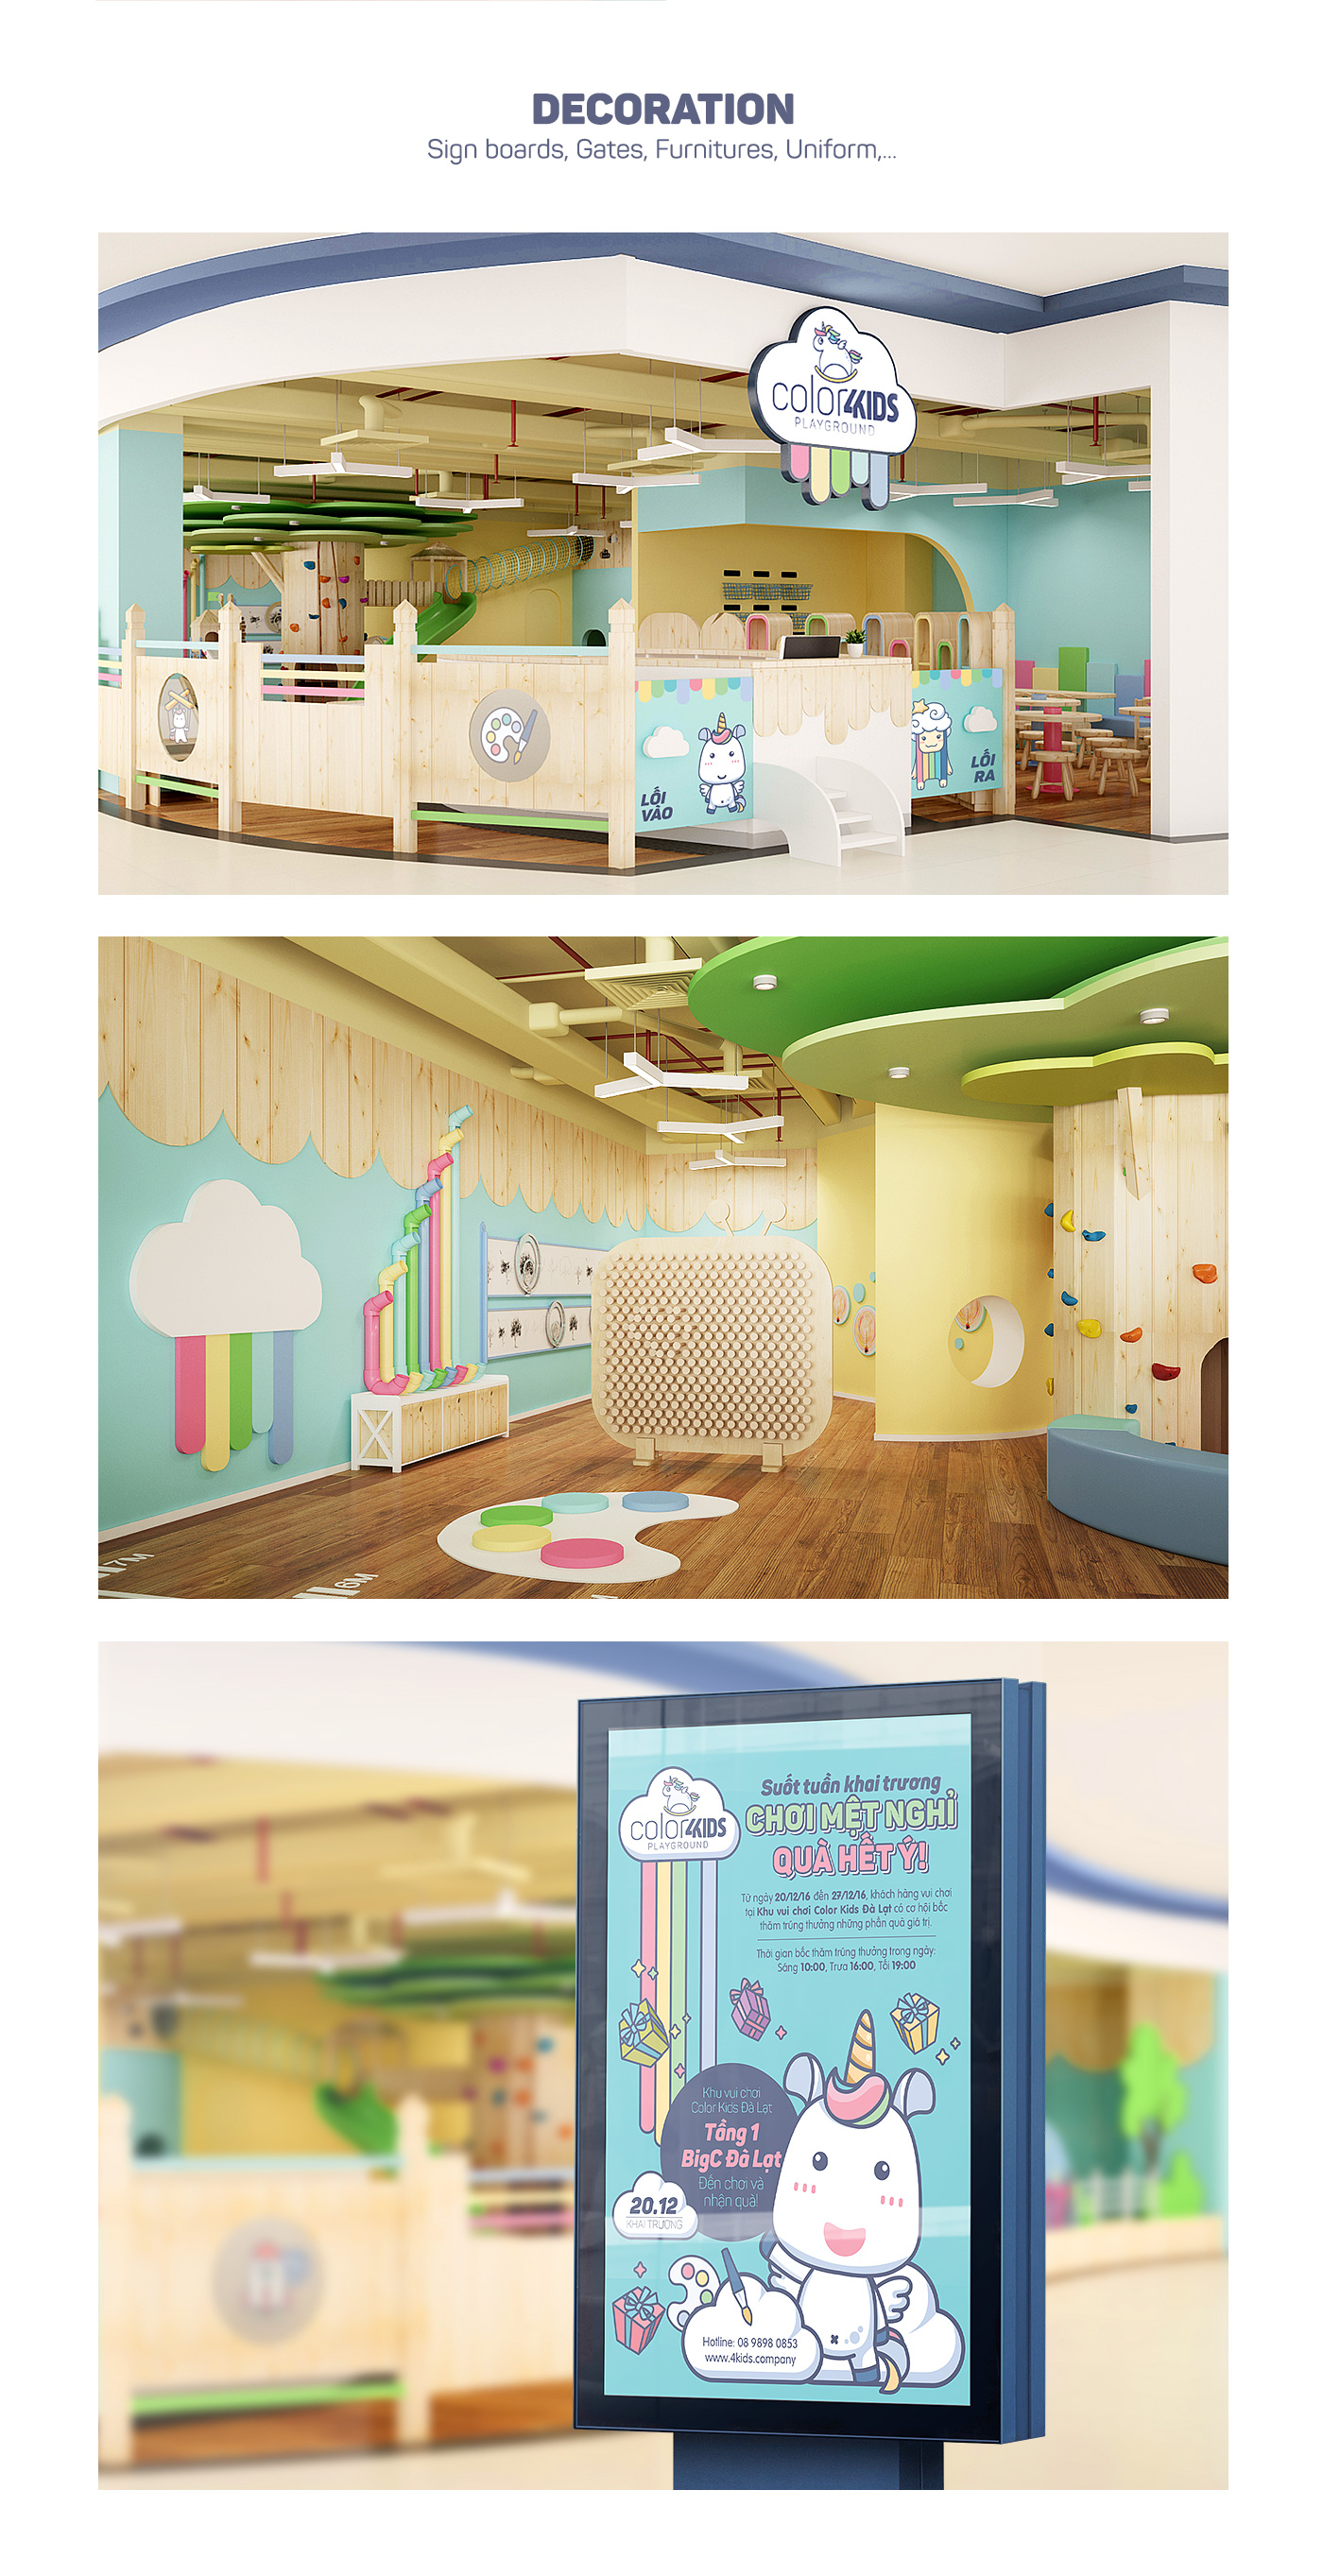 4KIDS Playground by Ngoc Thuy Do